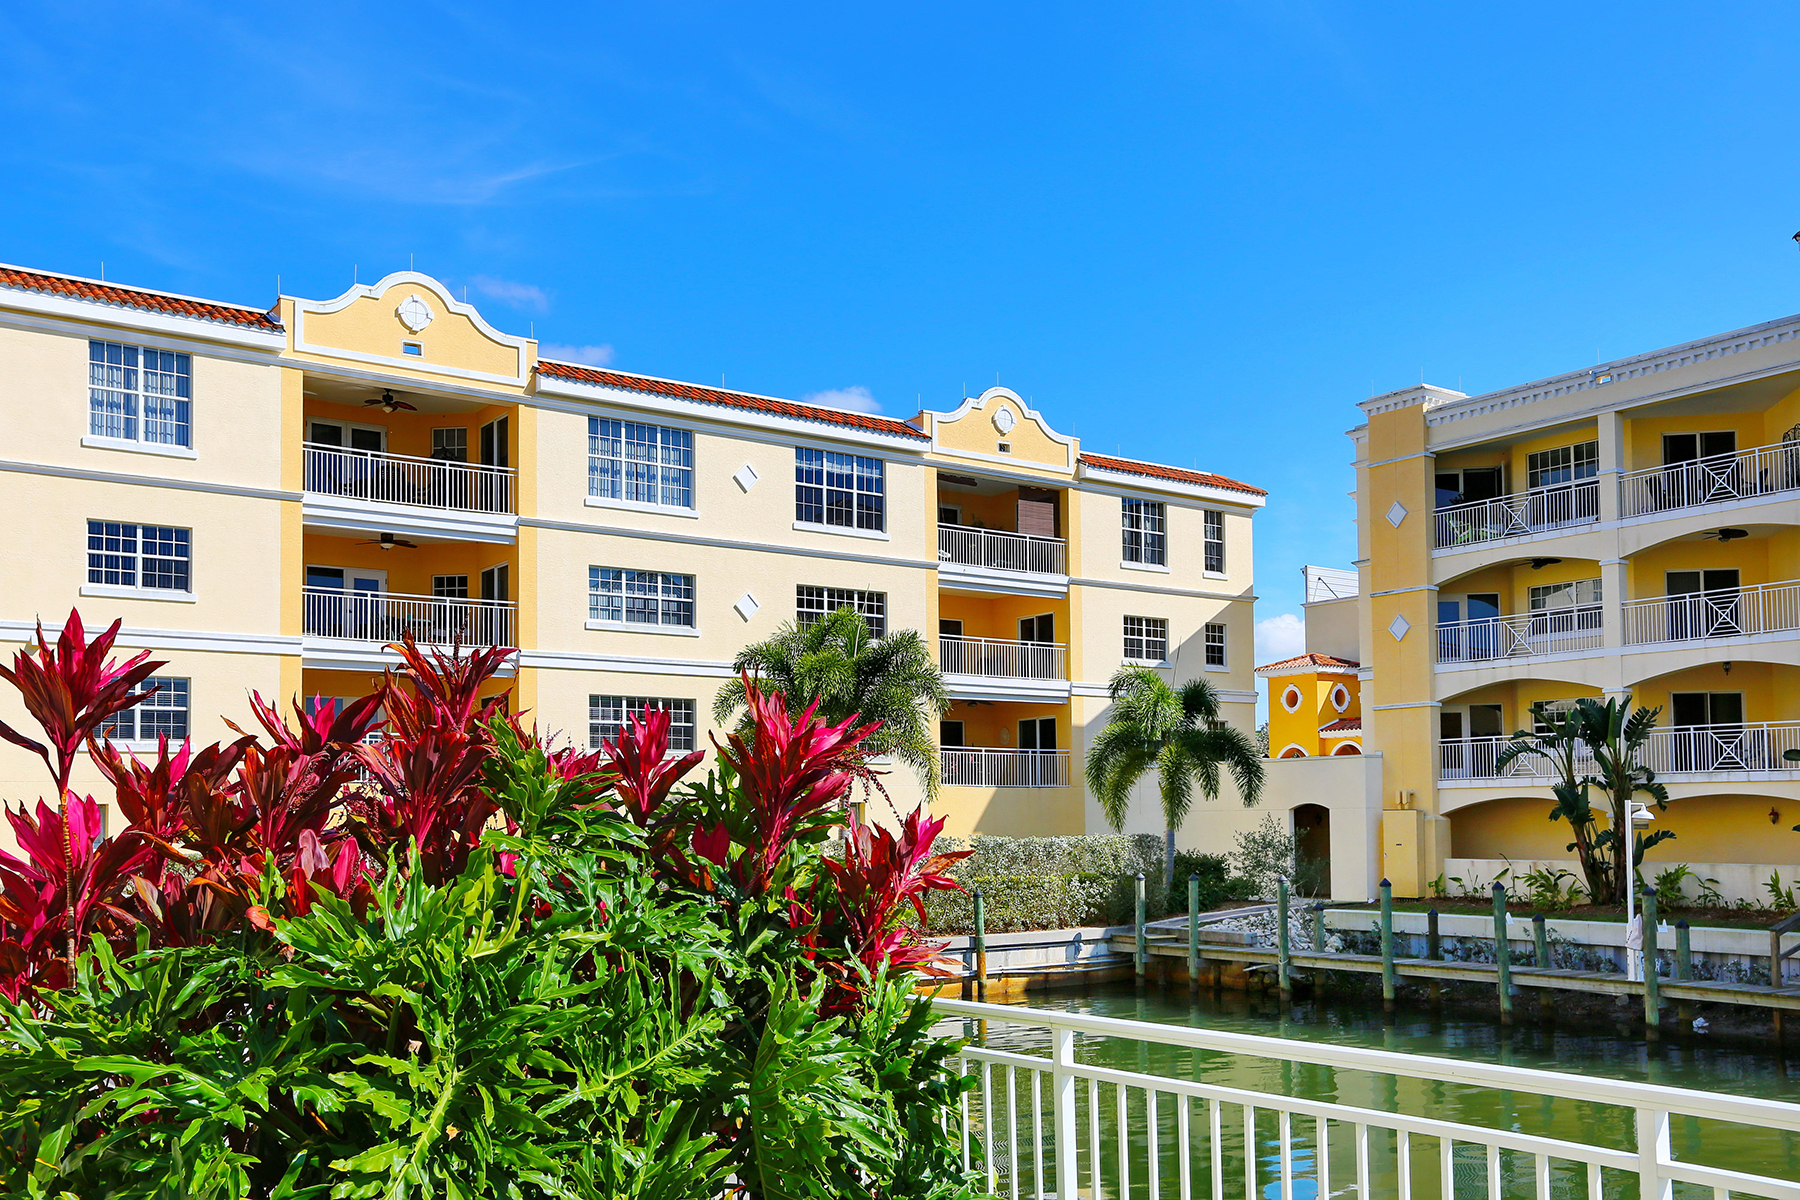 Copropriété pour l Vente à THE VILLAS AT OSPREY HARBOR 14041 Bellagio Way 315 Osprey, Florida, 34229 États-Unis